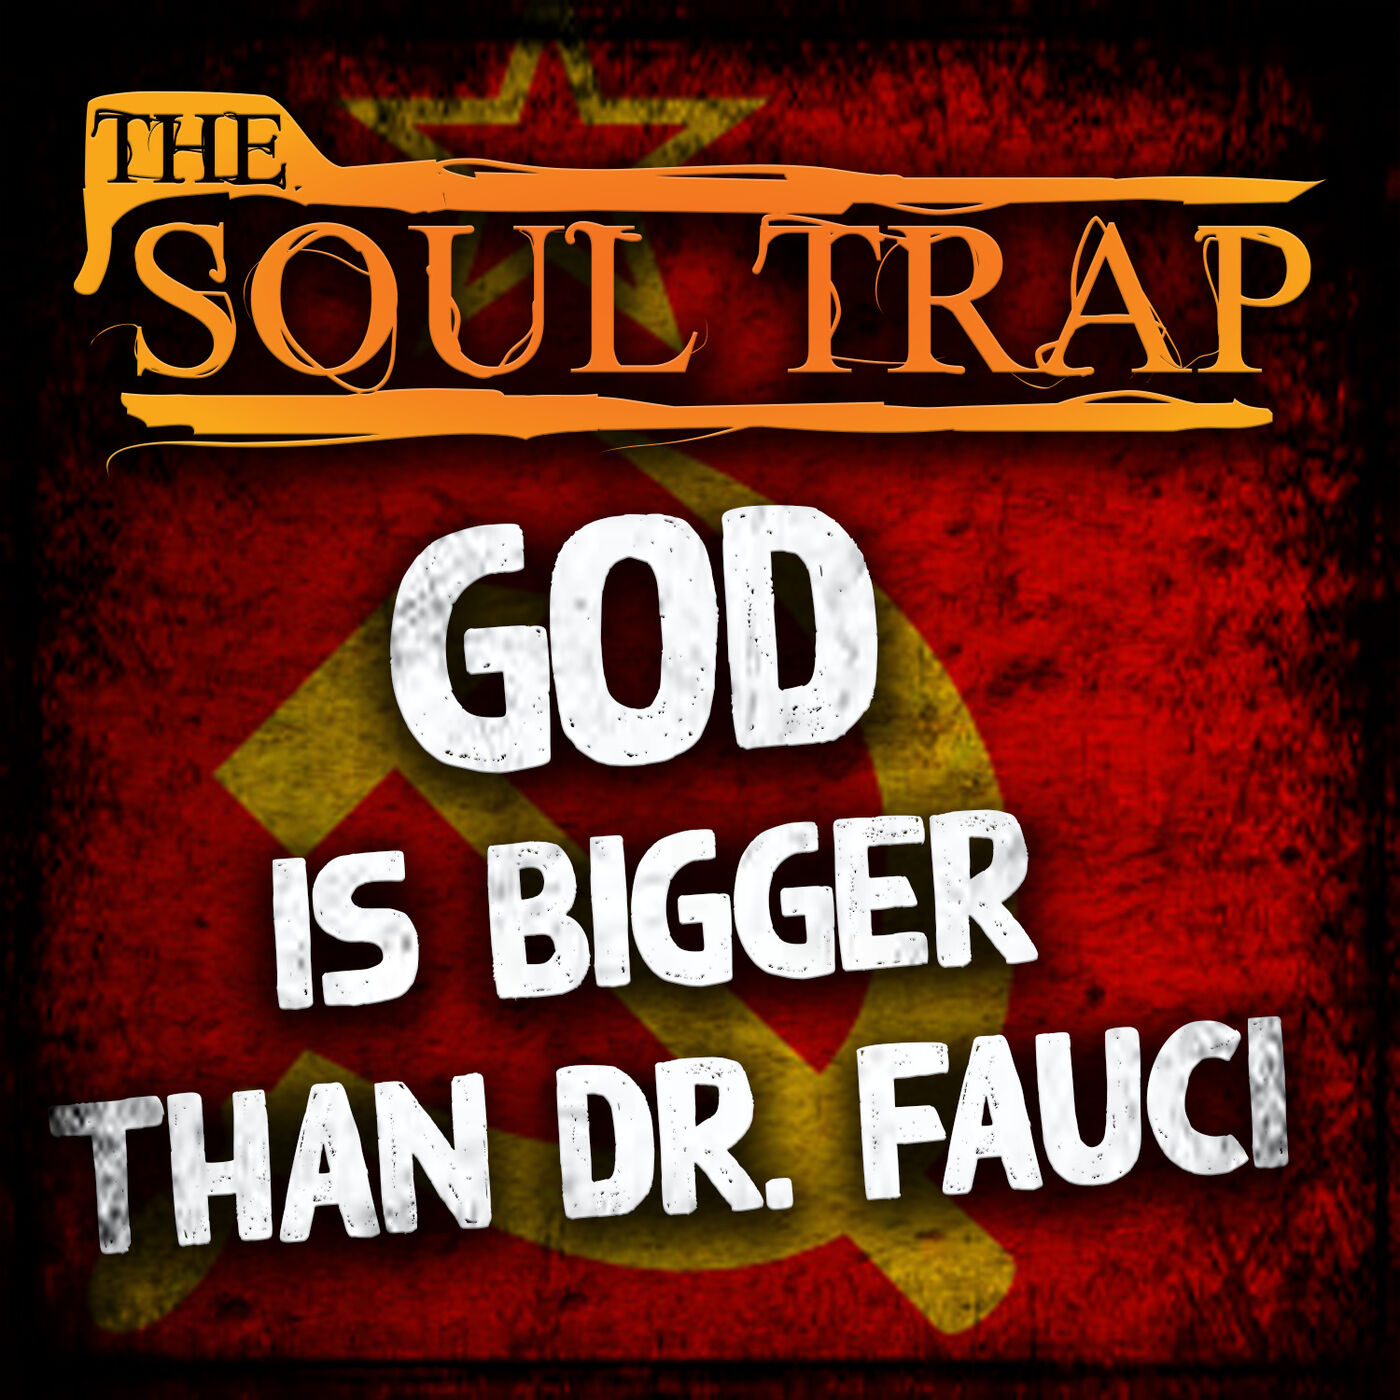 God Is Bigger Than Dr. Fauci